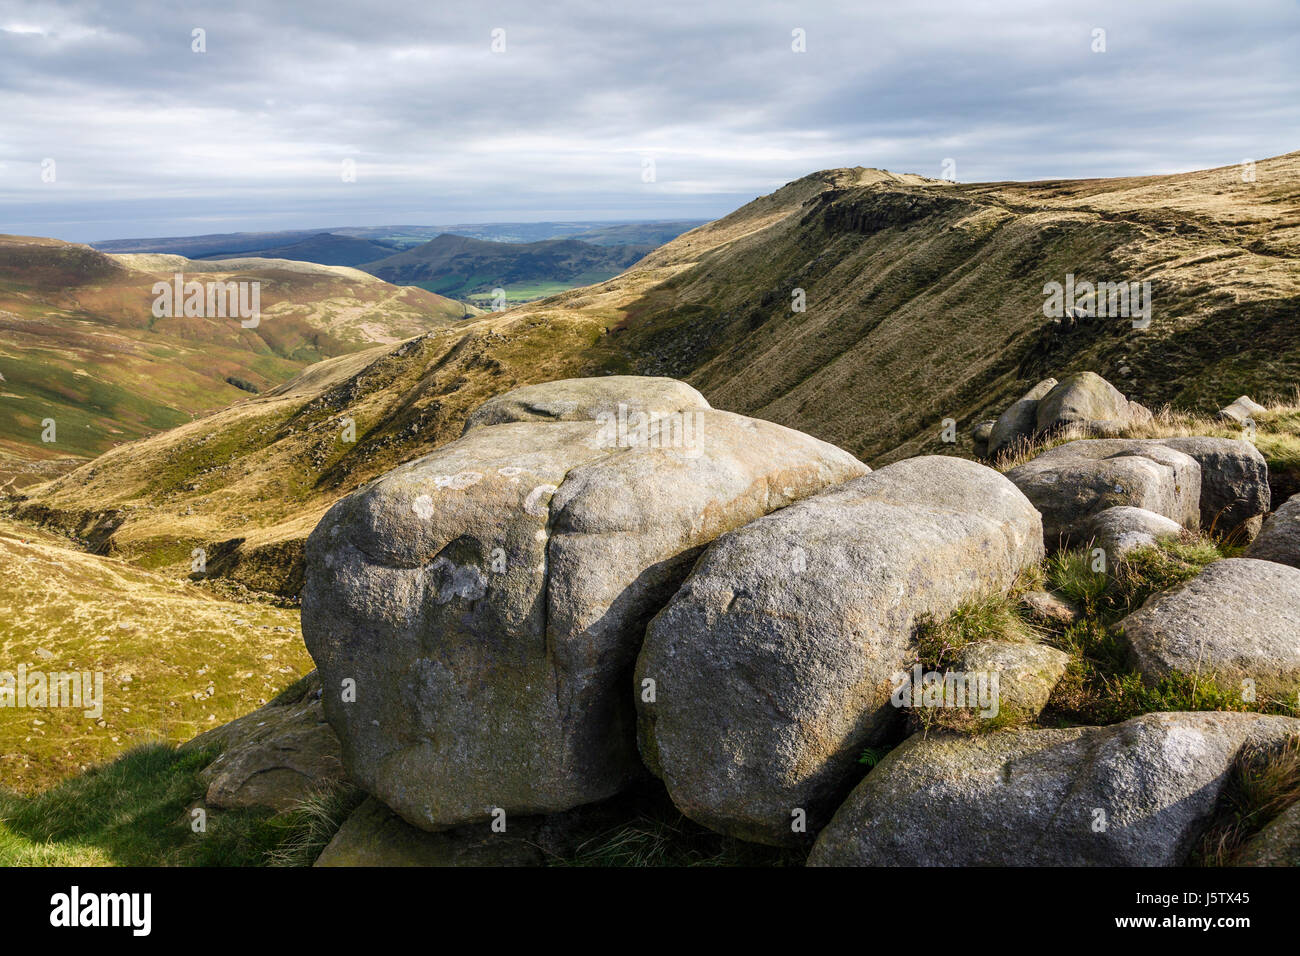 Grindsbrook Clough, Kinder Scout, Peak District National Park, Derbyshire - Stock Image